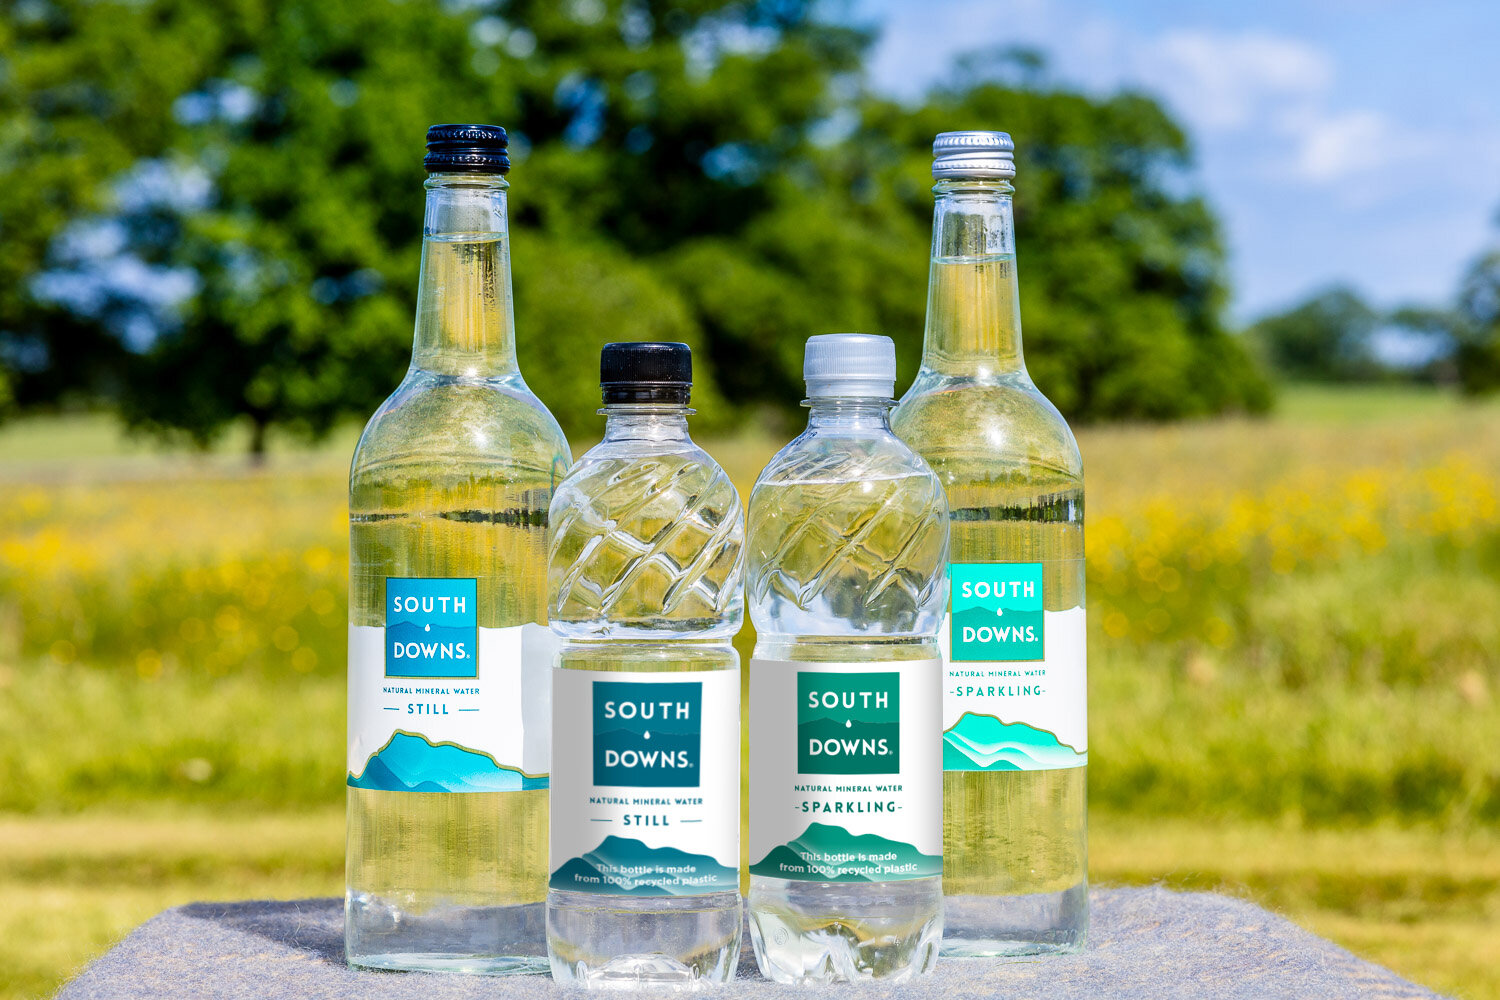 The South Downs Water family will be welcoming another new addition later in the year.